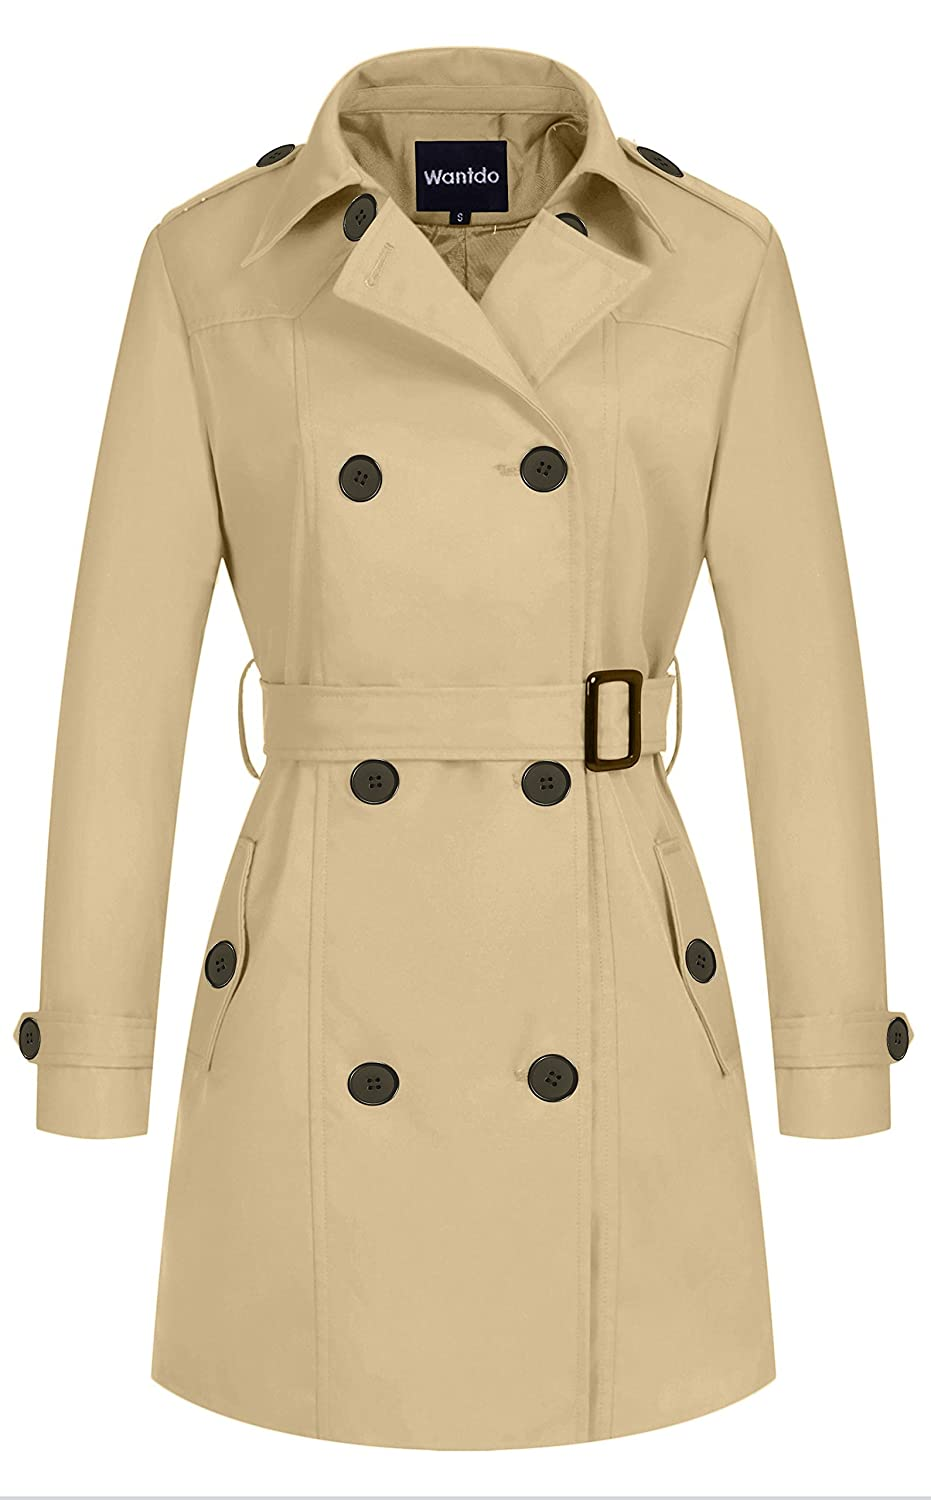 Wantdo Women's Double-Breasted Trench Coat with Belt Wantdo600